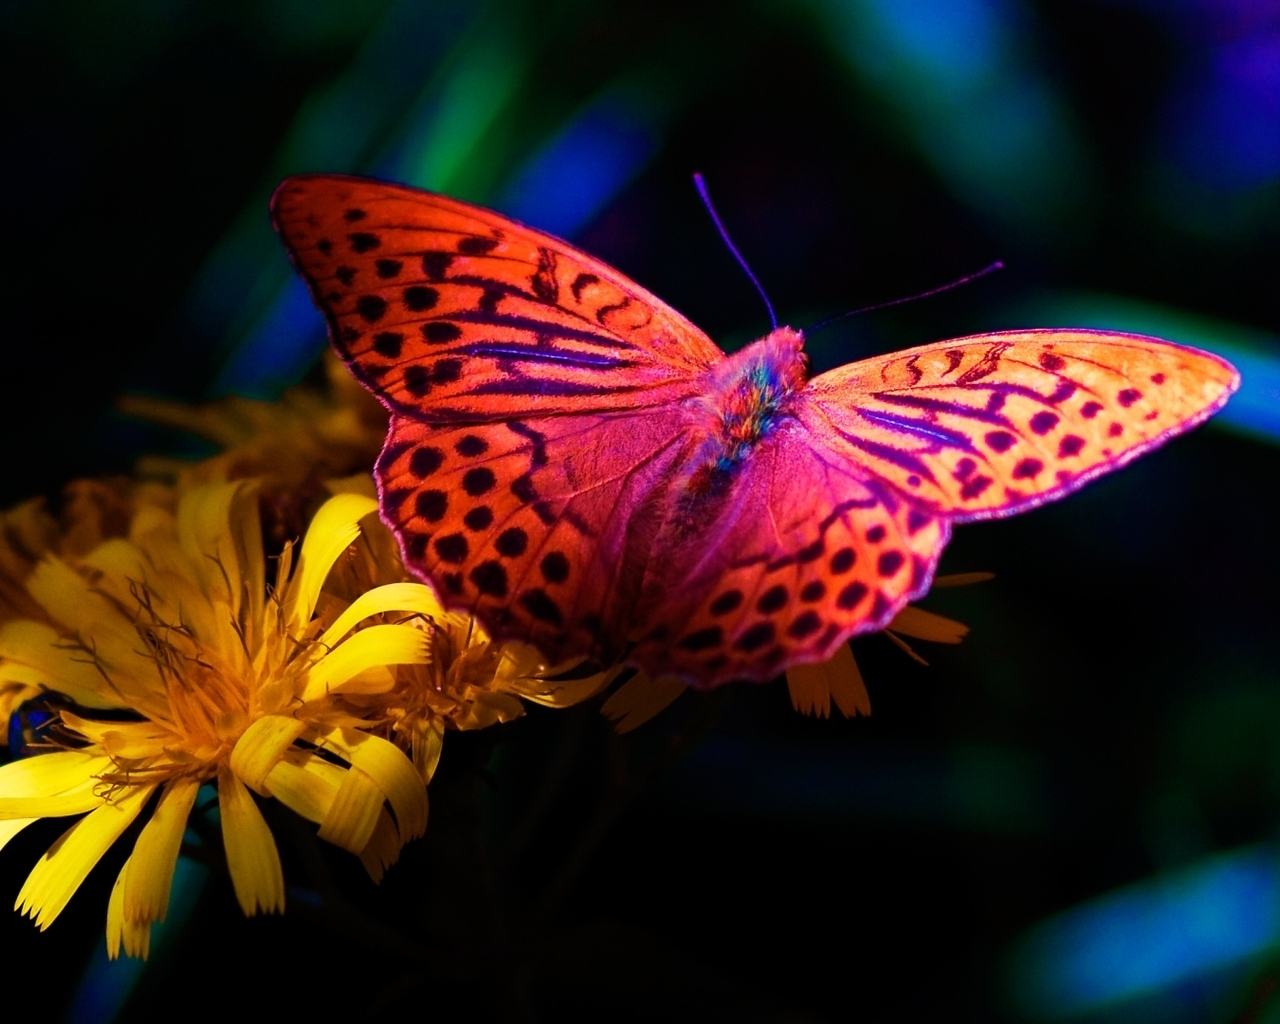 Image: butterfly, yellow flowers, night, nature